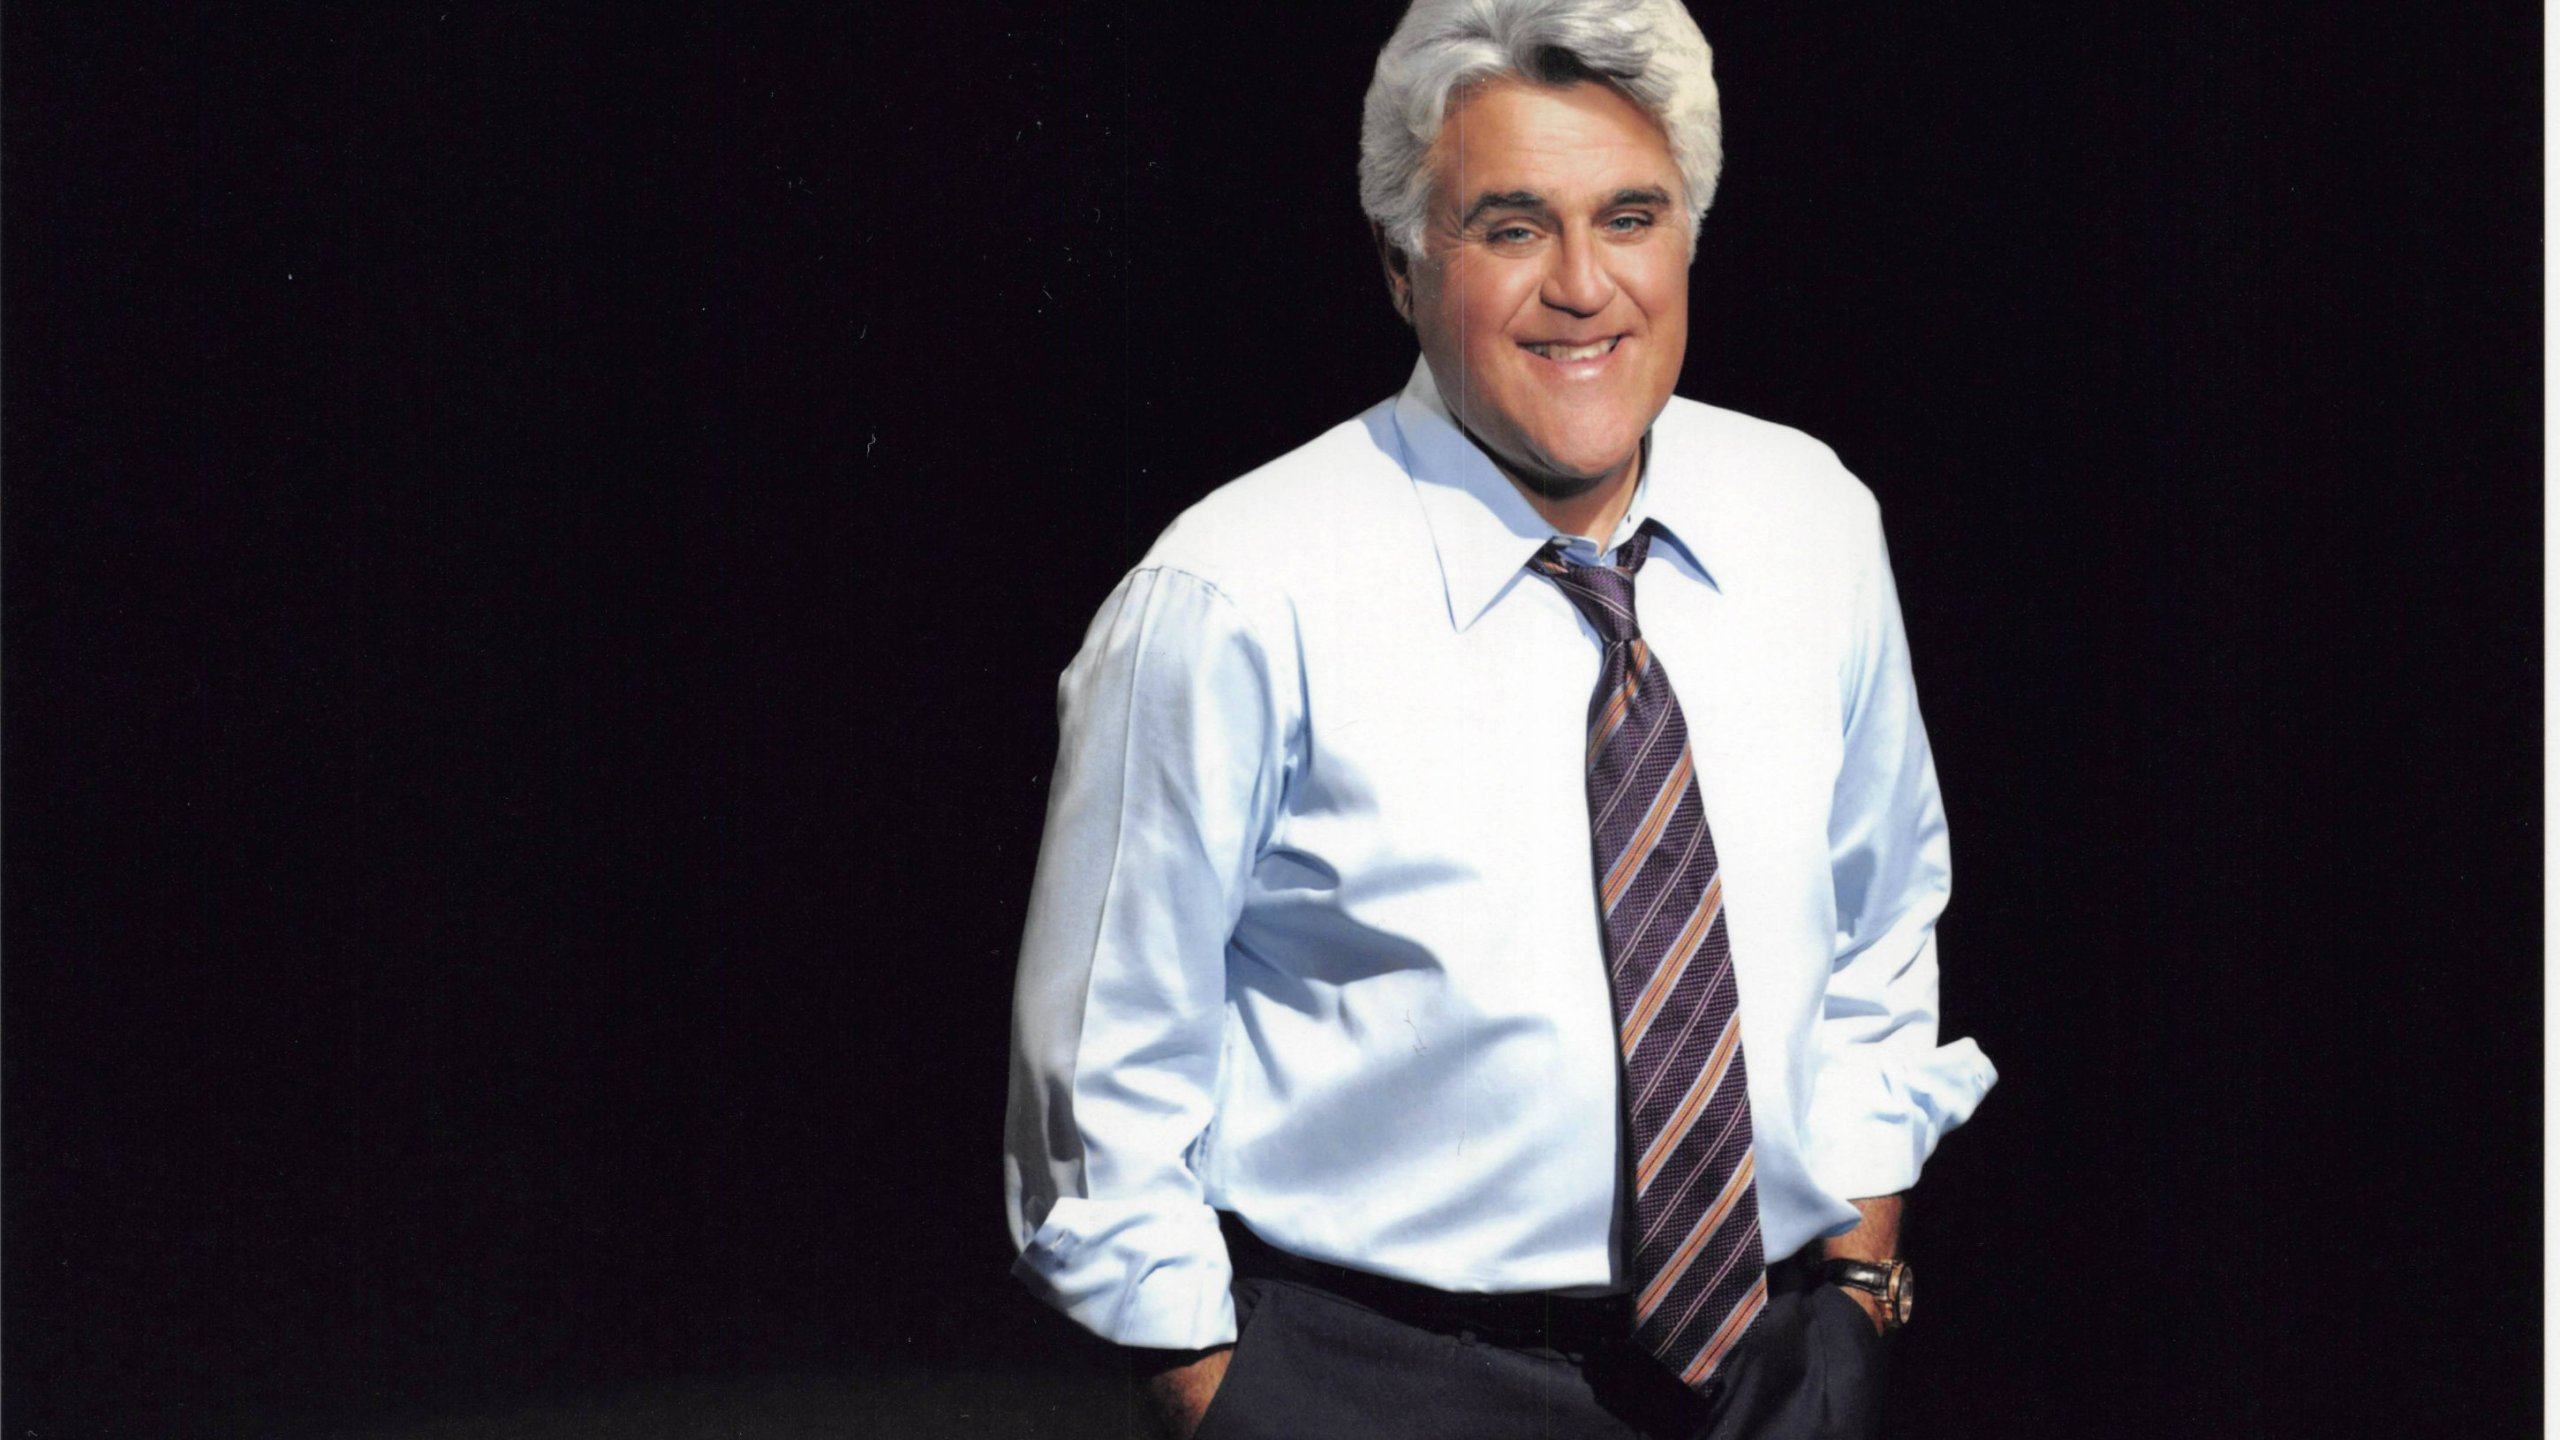 Jay Leno High Resolution Photo 2015_150121